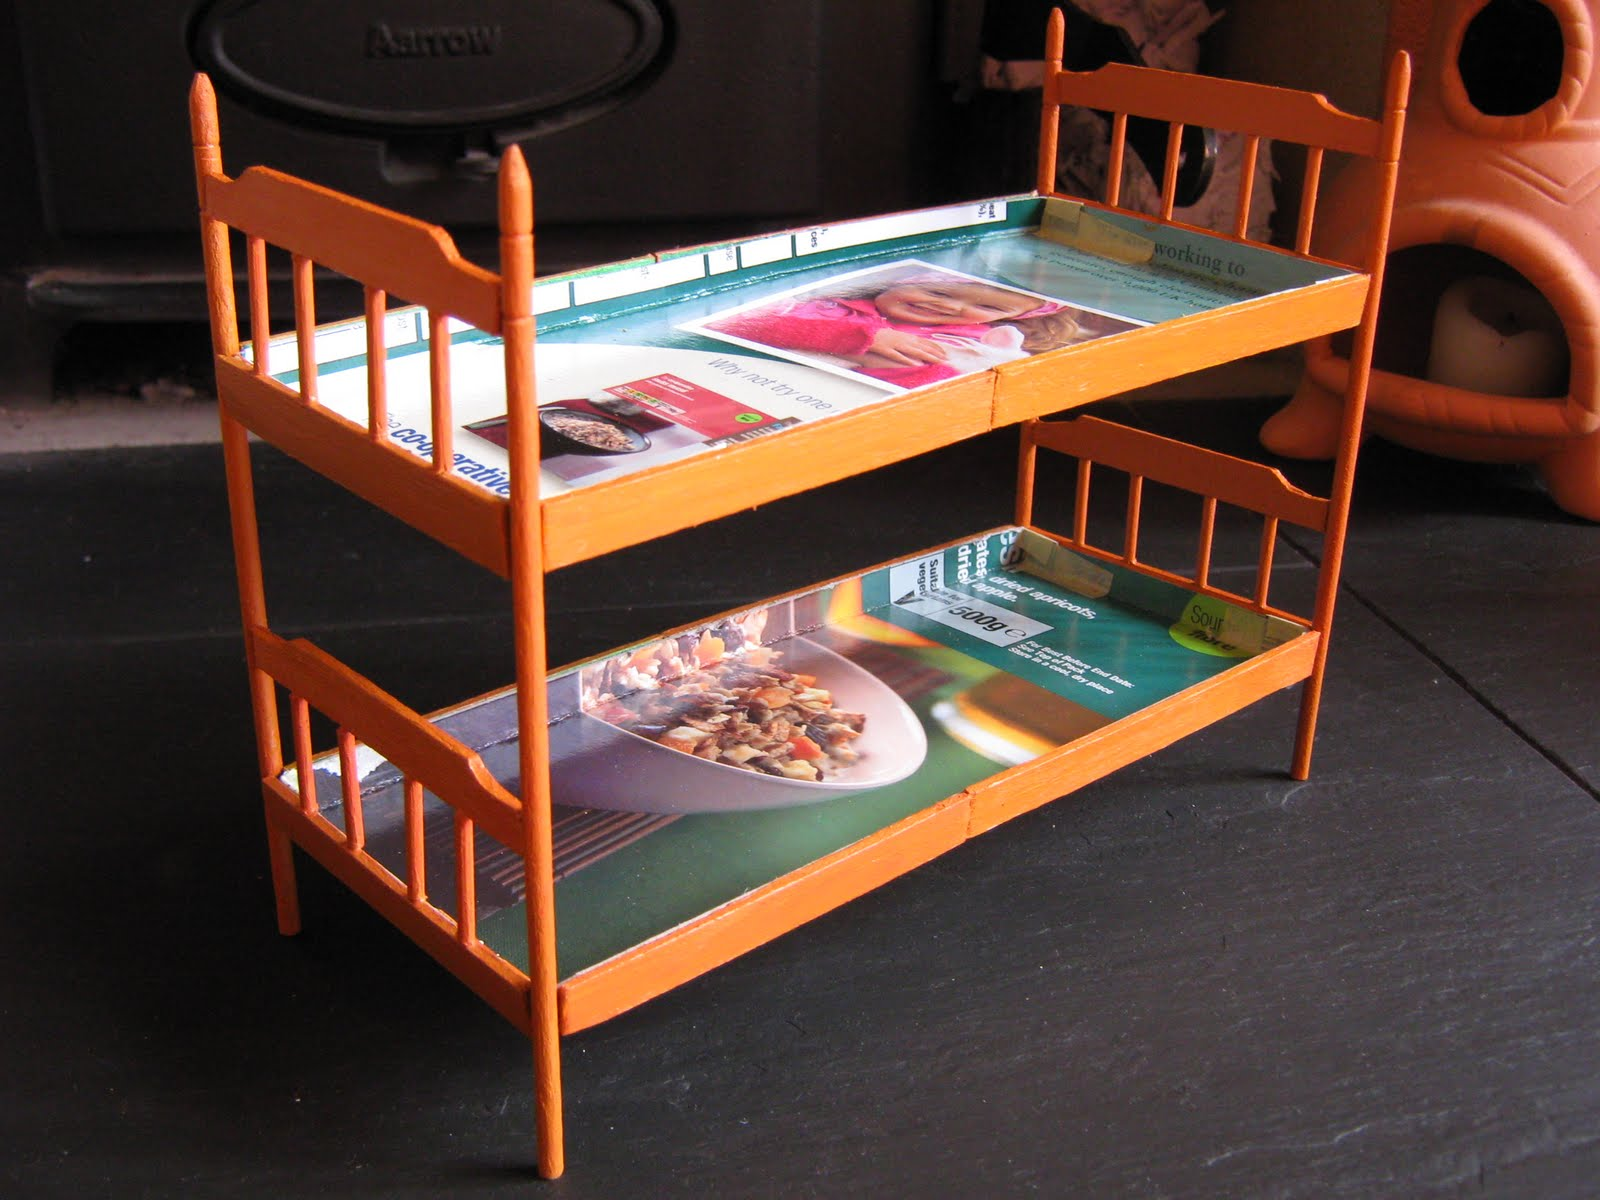 The craft arty kid old blog my model room 5 bunk beds - Beds for small space model ...